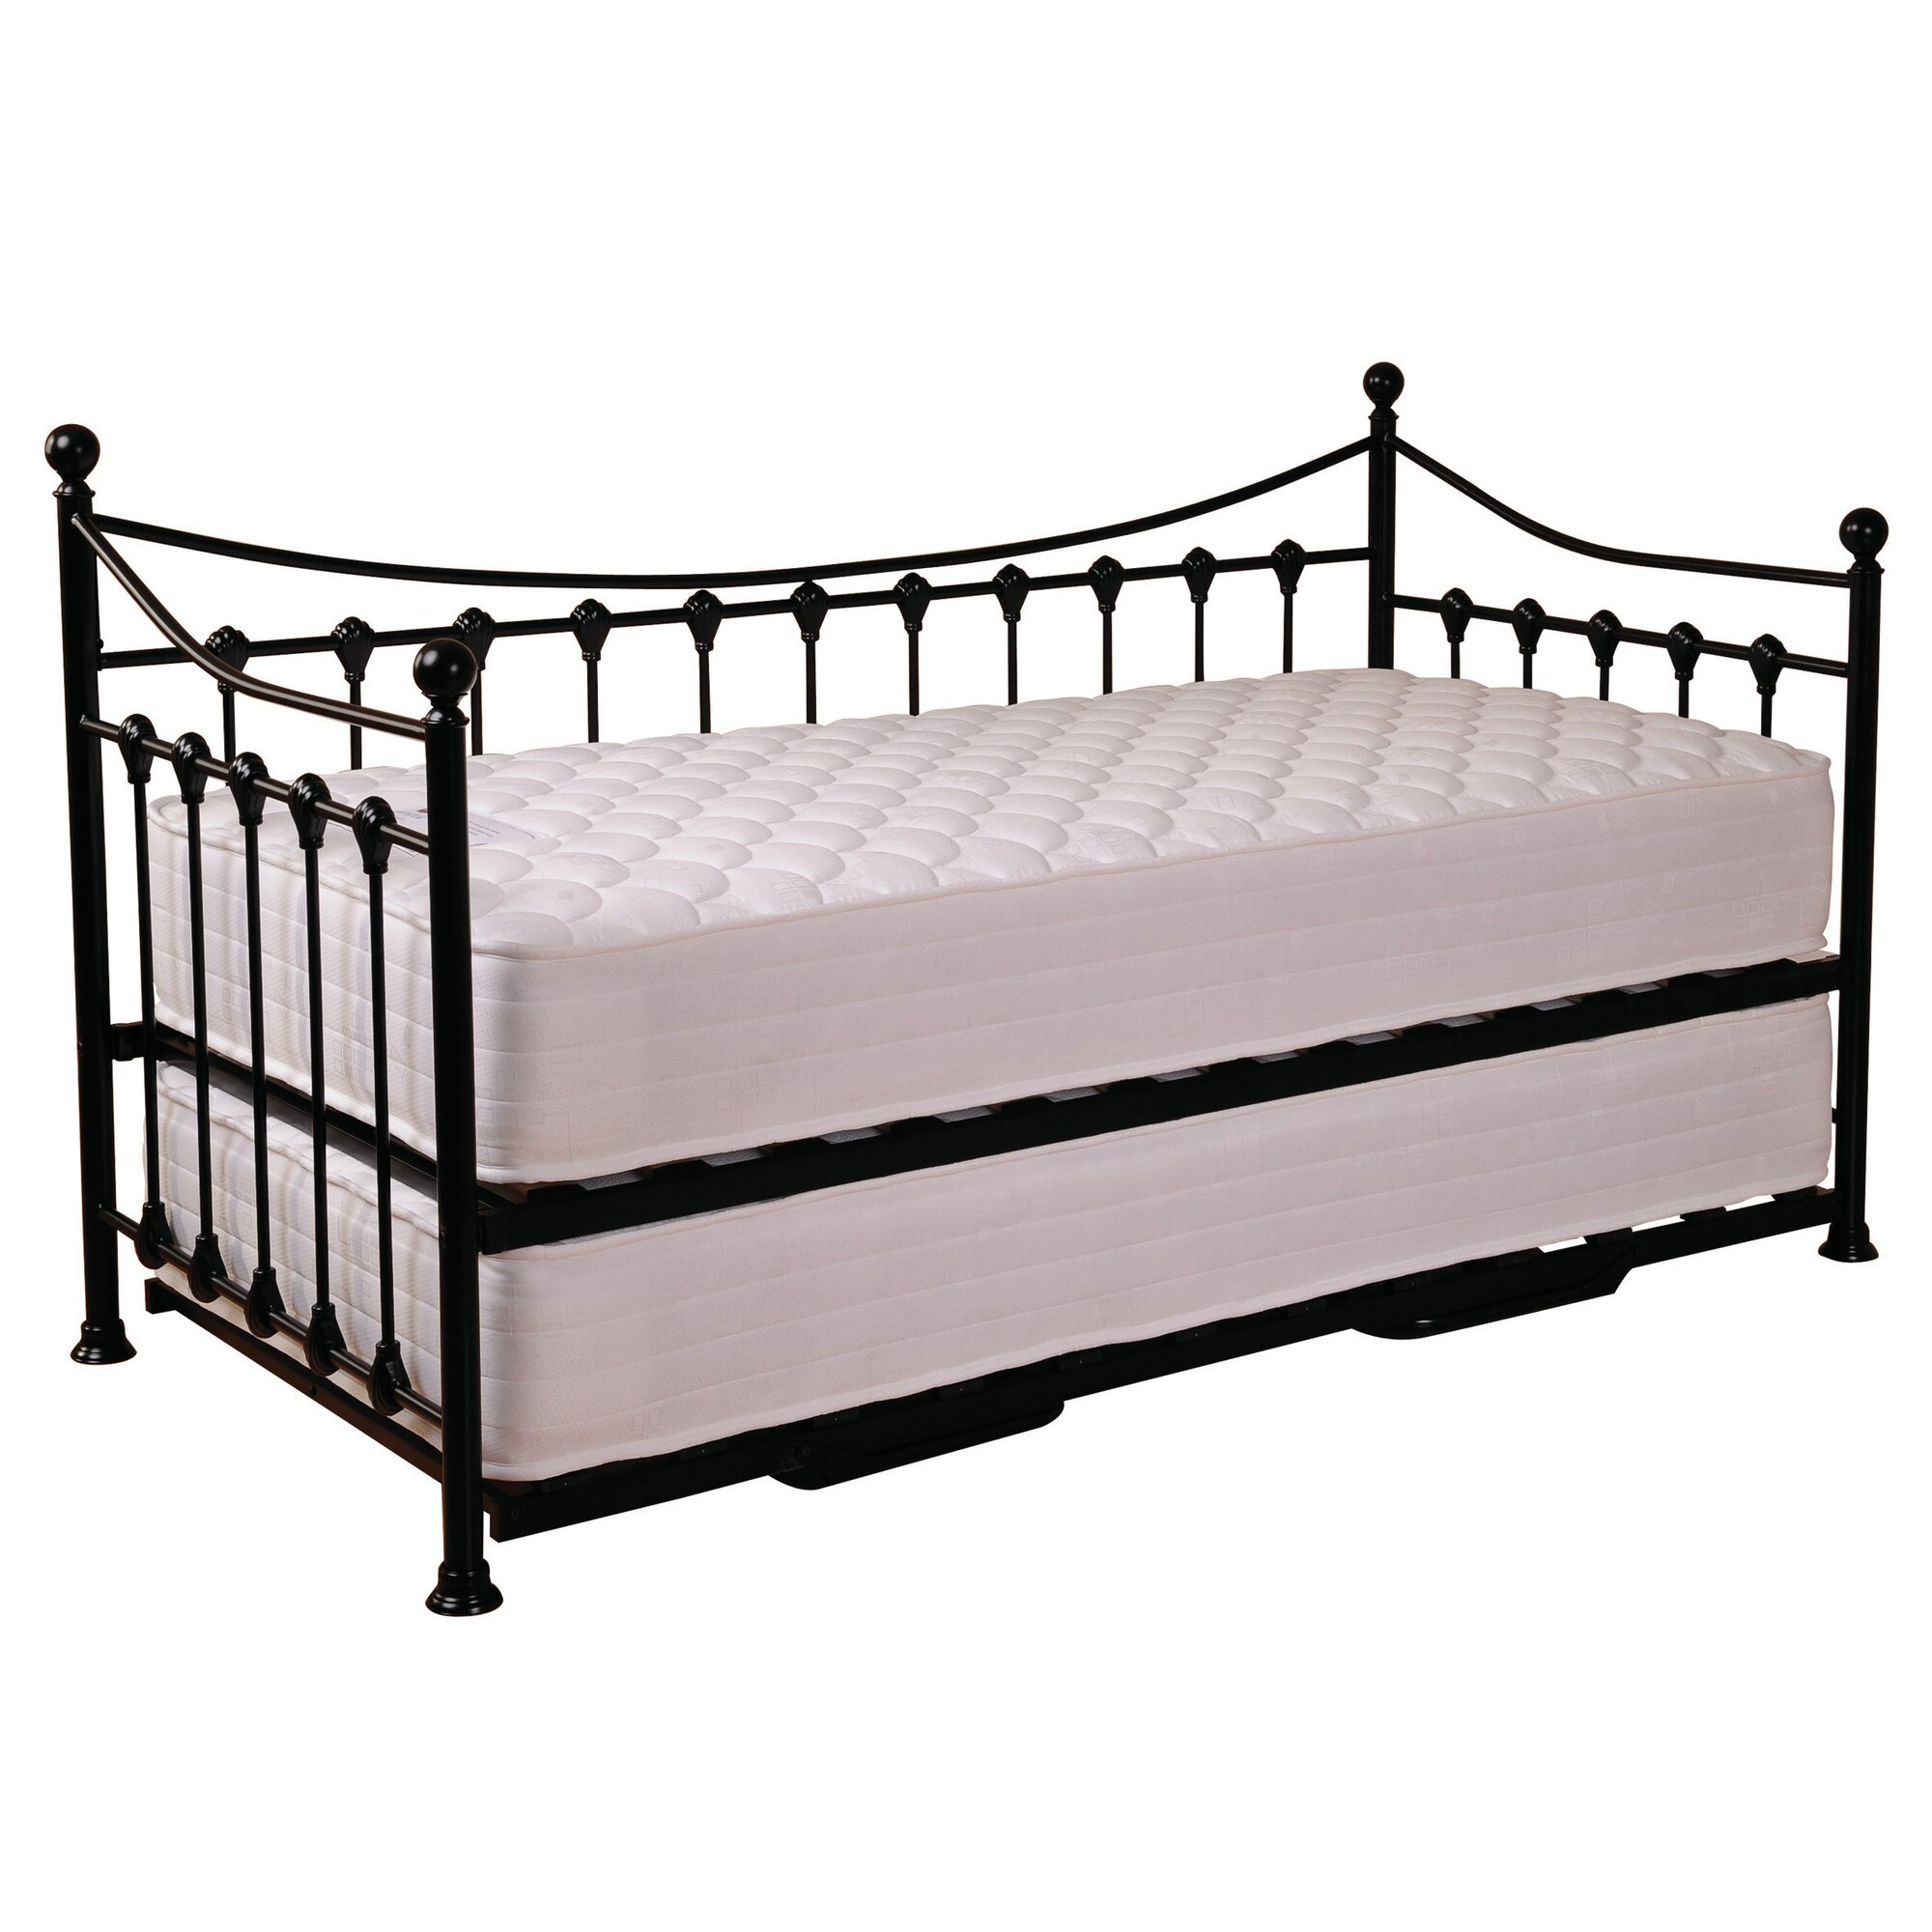 All Home Skiros Trundle Day Bed Frame Reviews Wayfaircouk